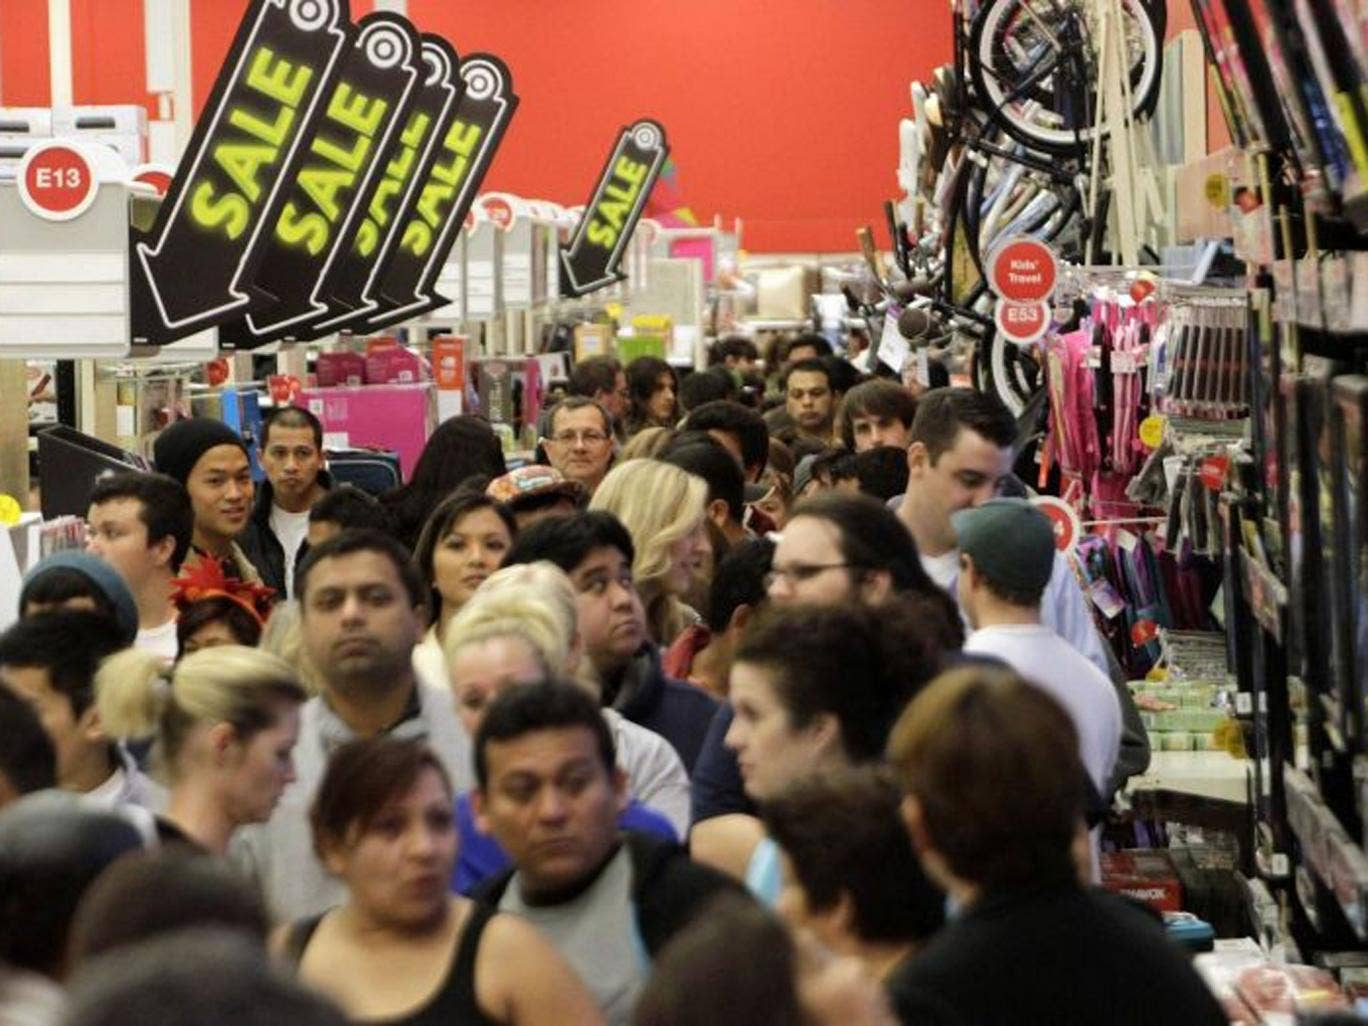 The traditional shopping frenzy takes place the day after Thanksgiving in the US and marks the beginning of the Christmas shopping season, with an estimated 147 million people in the US expected to hit the shops.